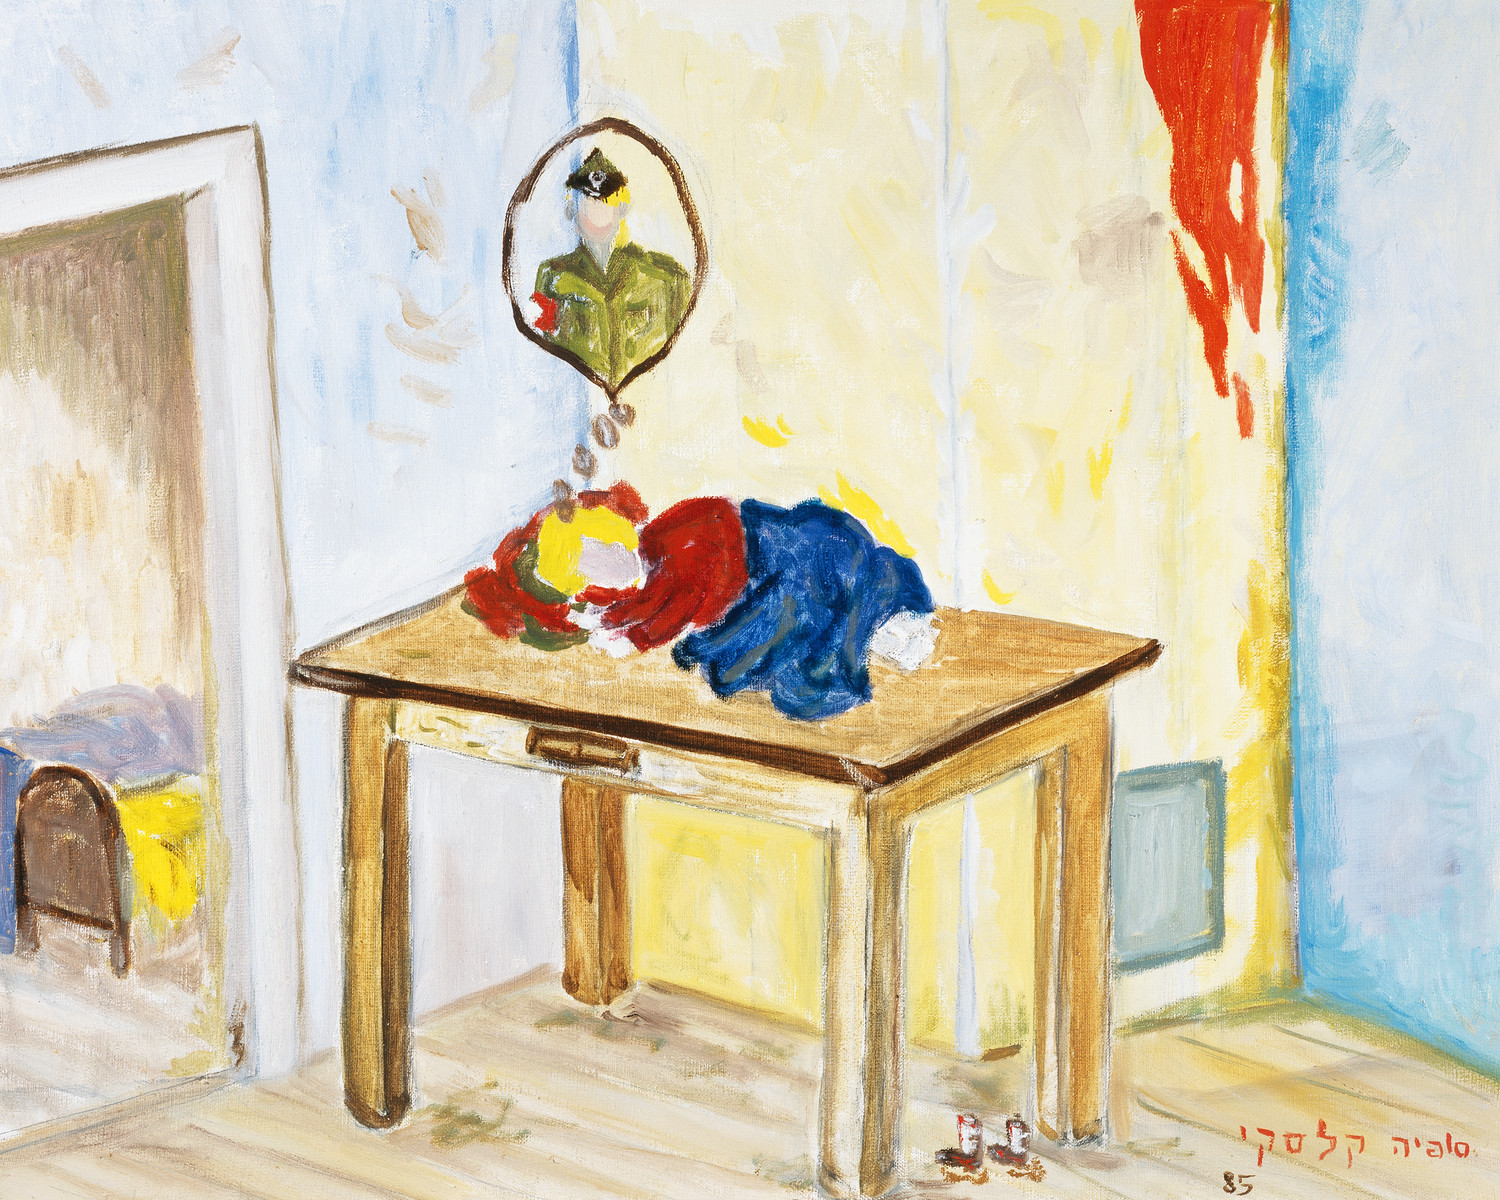 """A painting by artist Sophia Kalski depicting an image of the Lwow ghetto.   The artist writes """"I received a bed, March 1943, Lwow ghetto. I am alone, no parents and no home. I lived with three families in one room. In the last few nights, they let me sleep on a small table that stood in the corner next to the oven. The oven was not lit, and my blue coat was the one that kept me warm."""""""